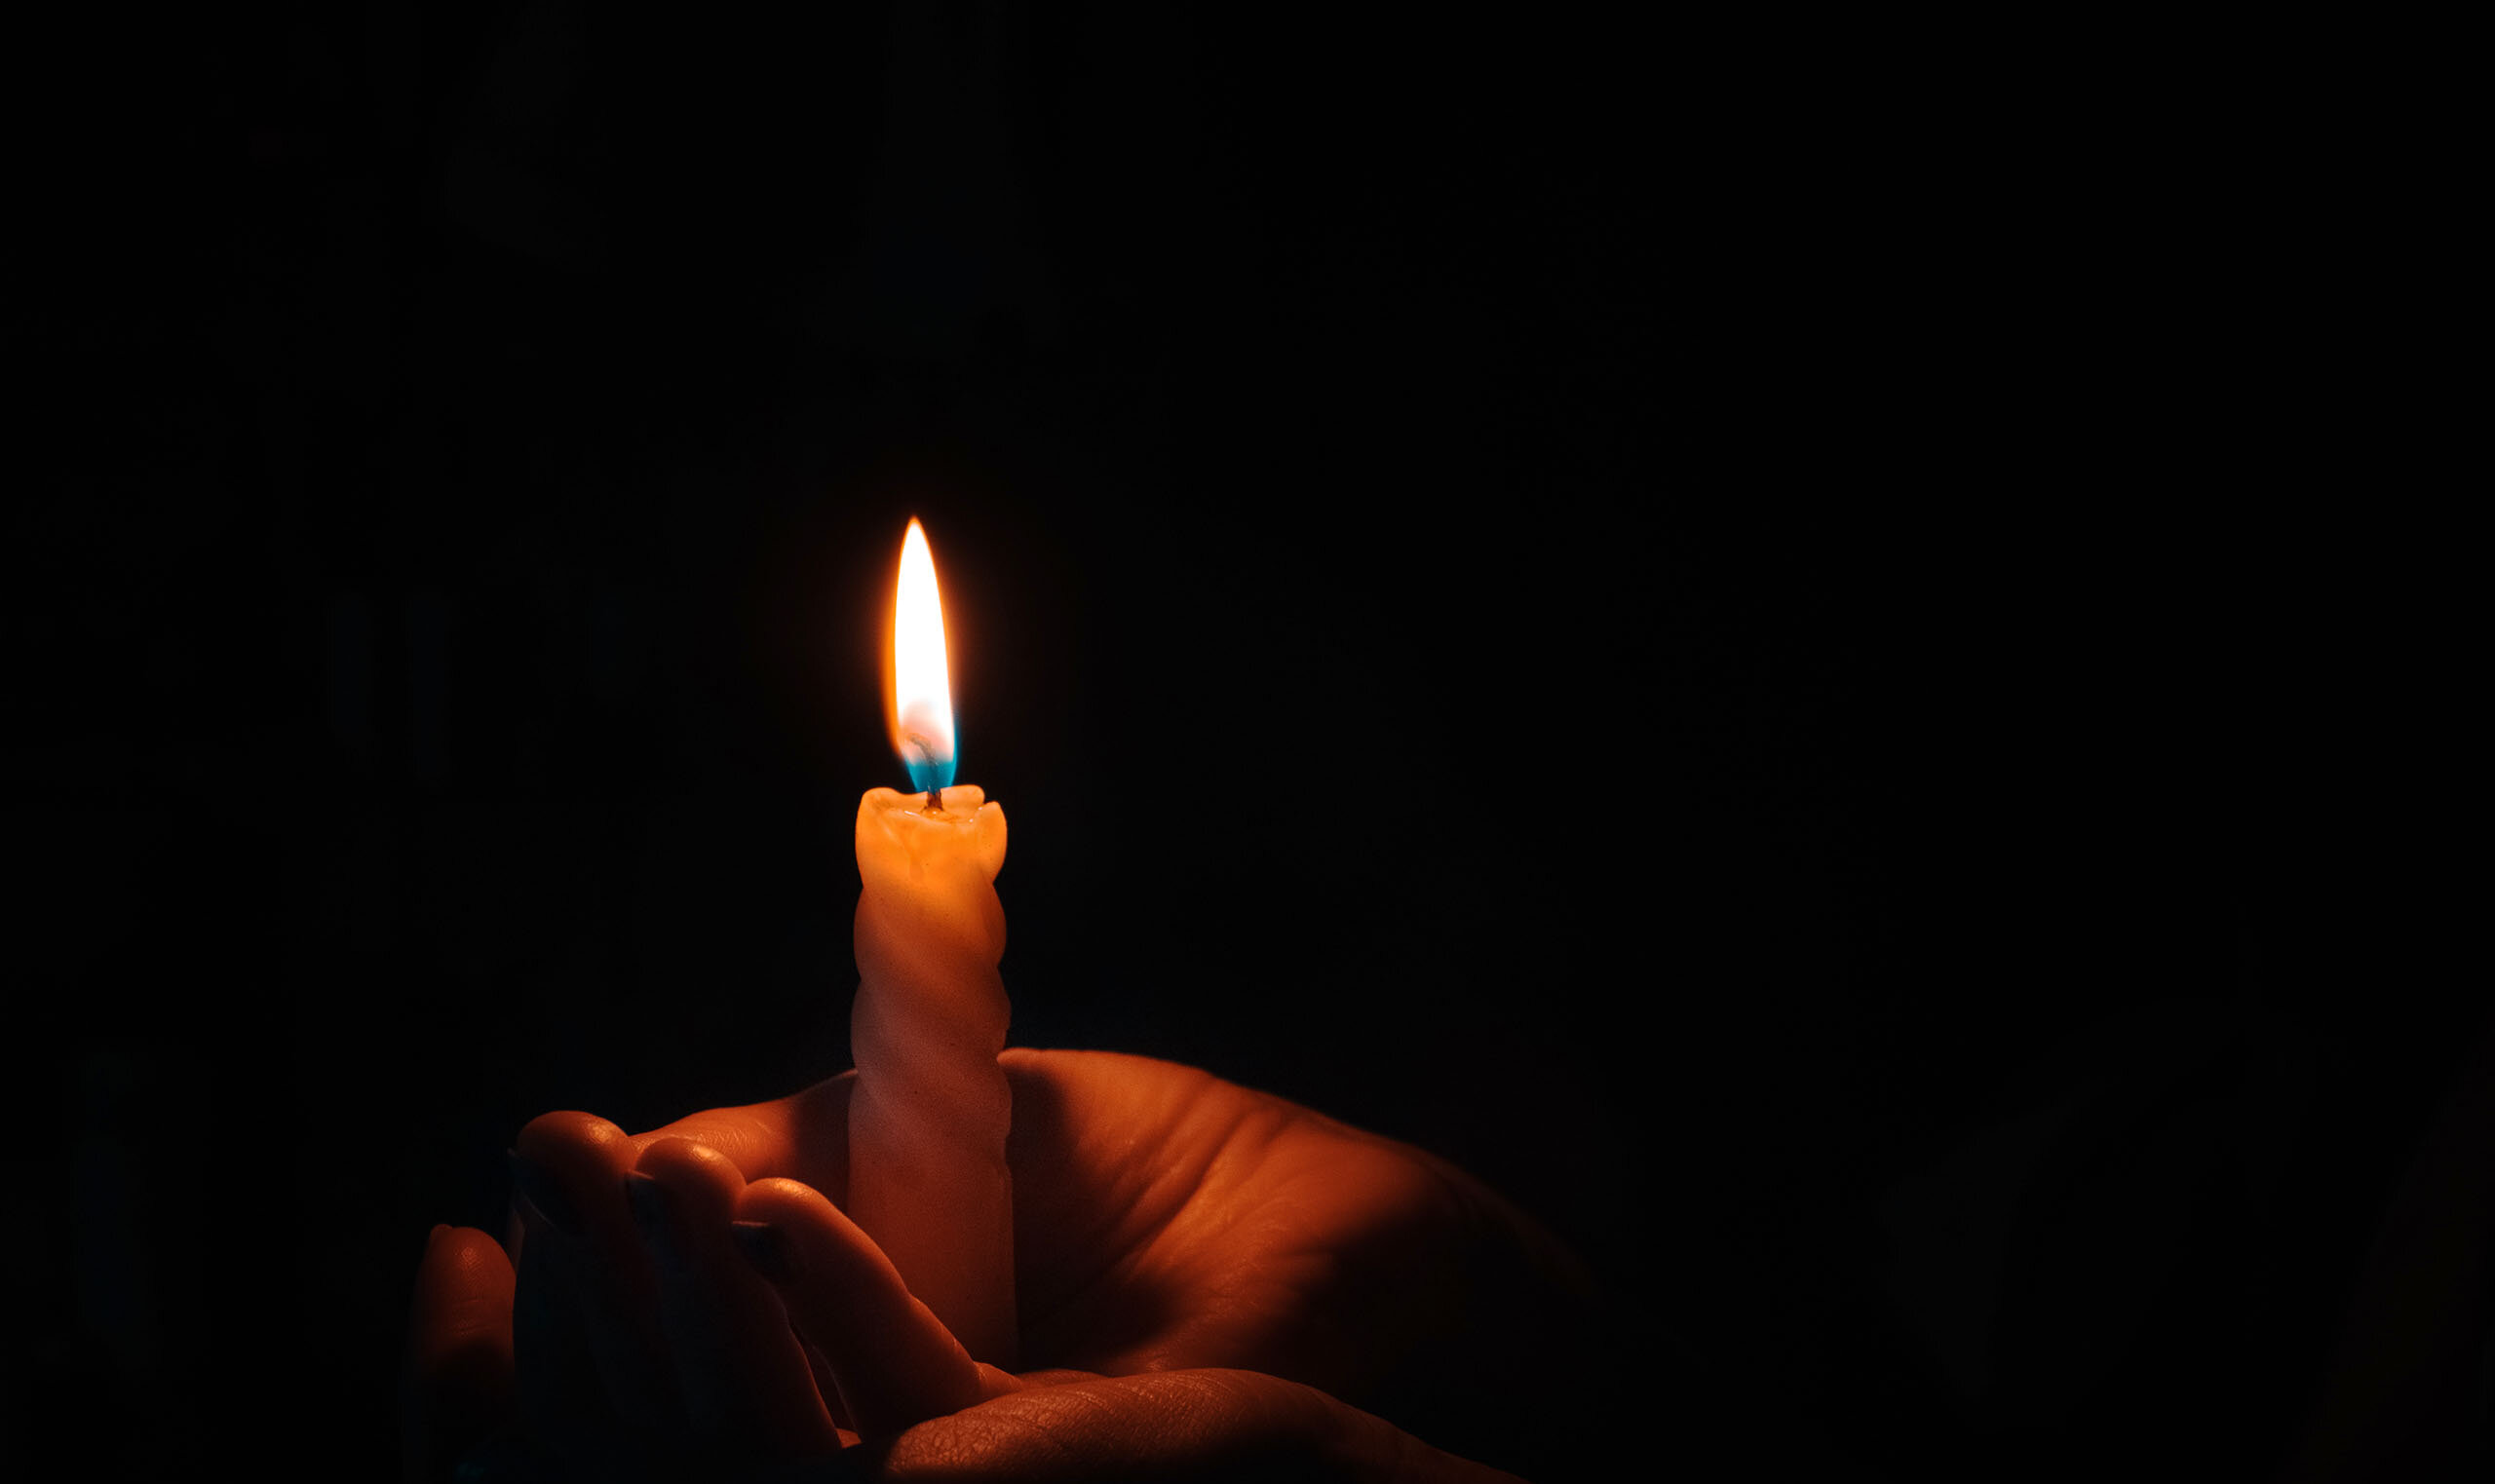 Hands holding candle